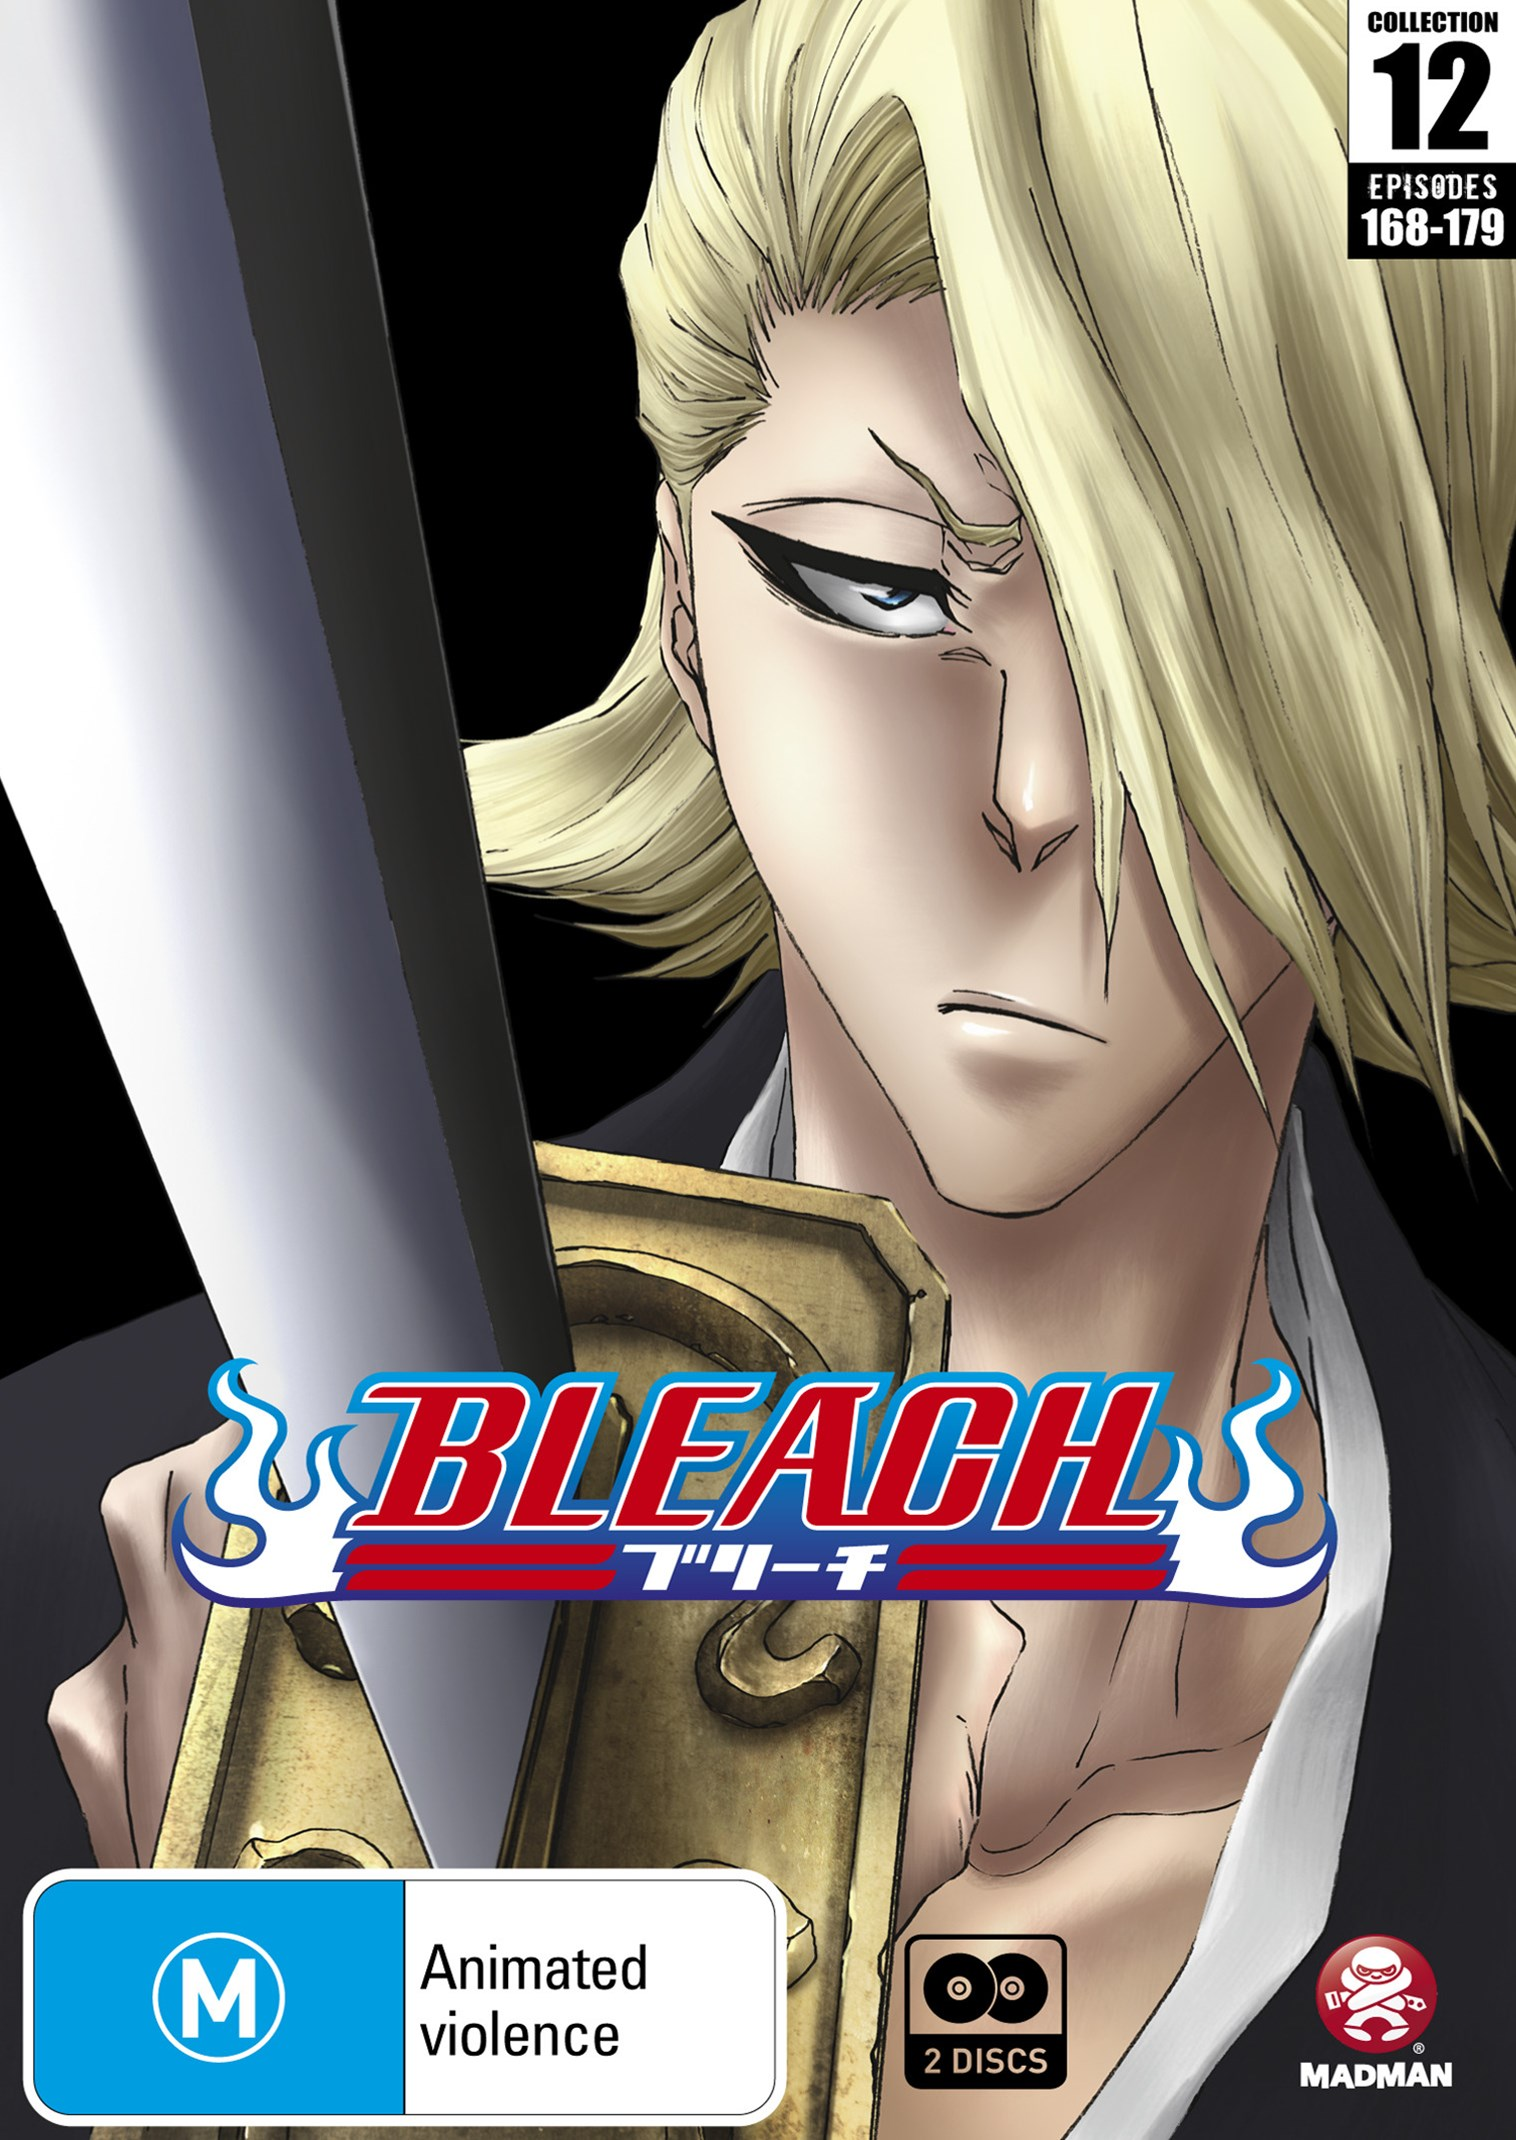 Bleach: Collection 12 (Eps 168 -179)